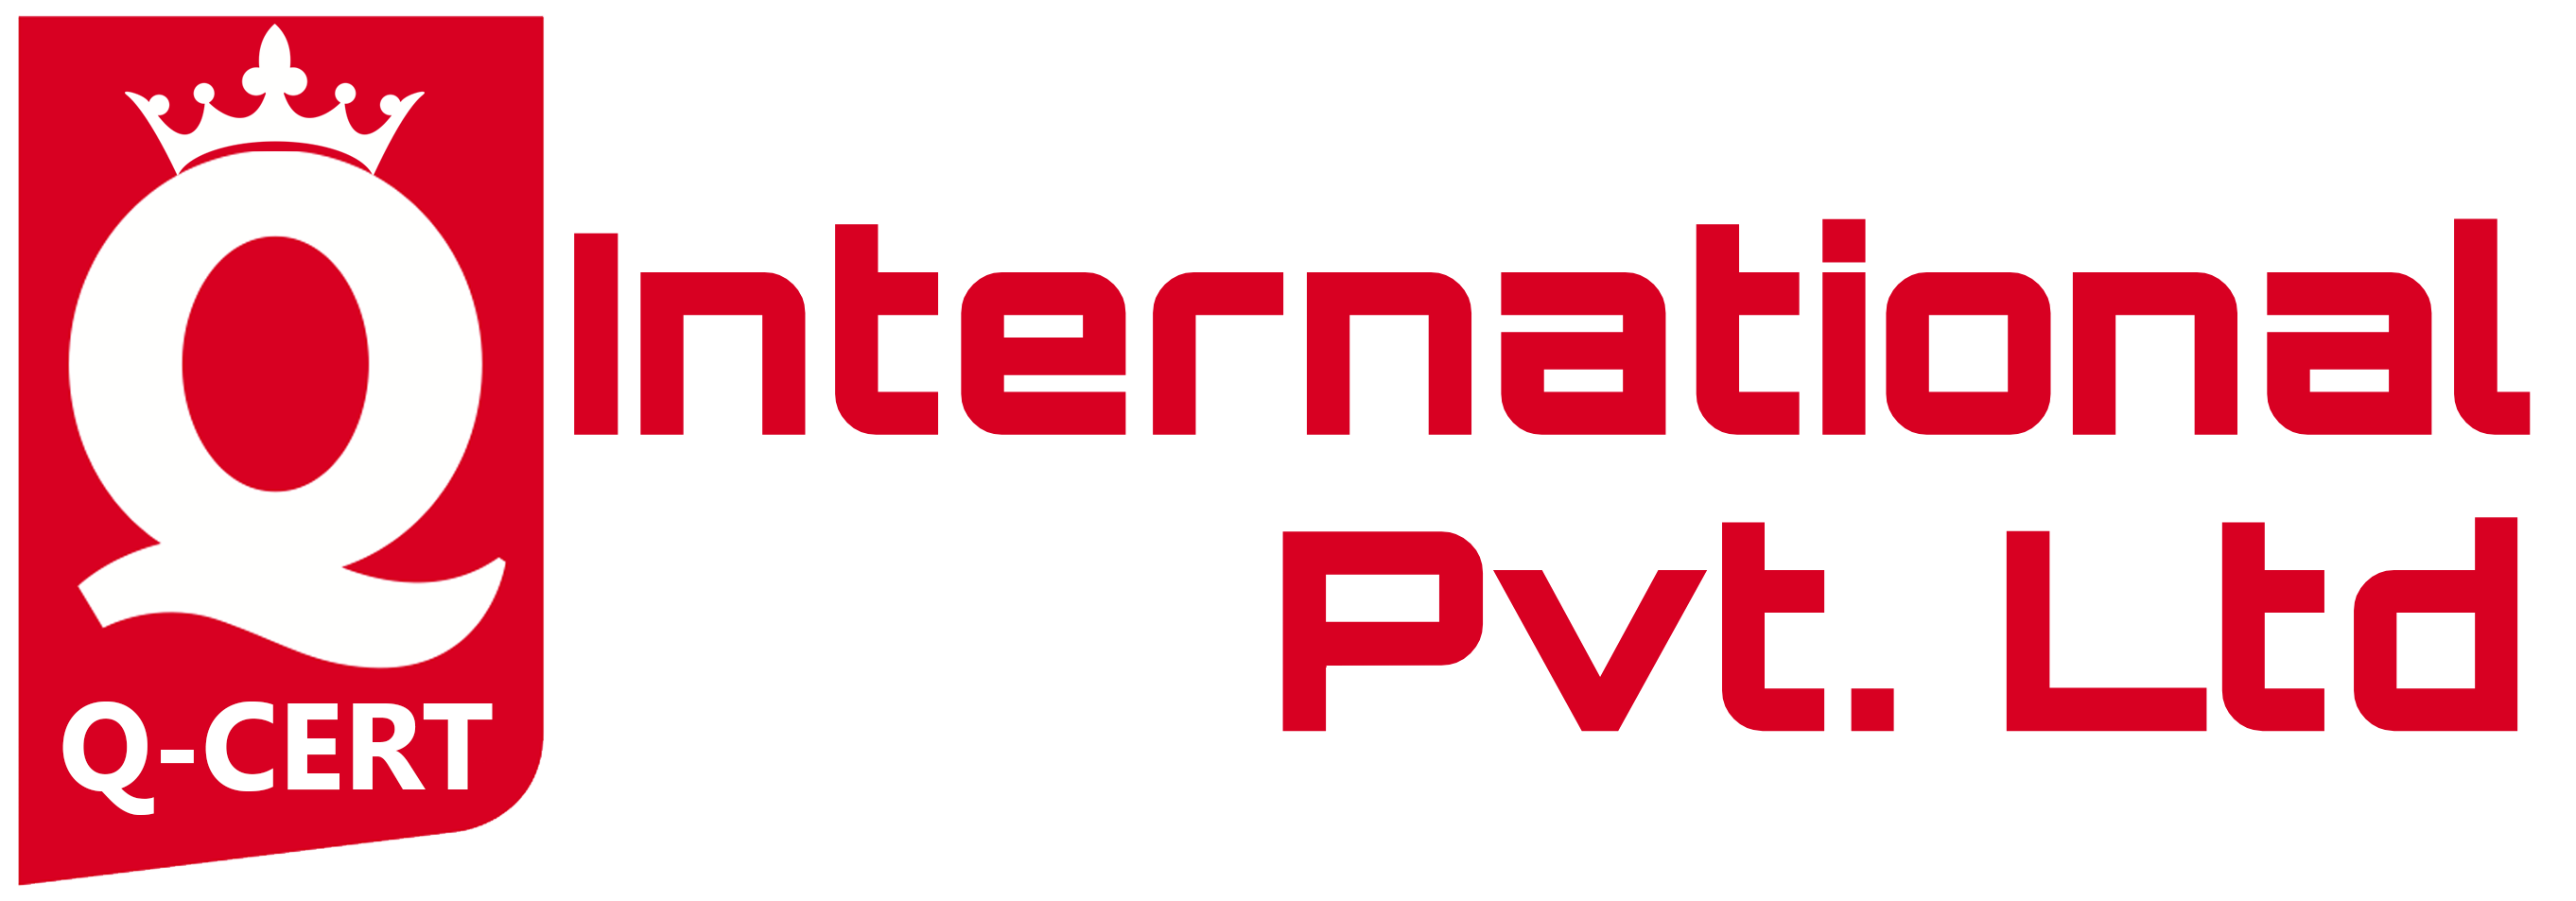 q-cert-international.pvt.ltd.logo-iso-certification-iso-firm-iso-consultant